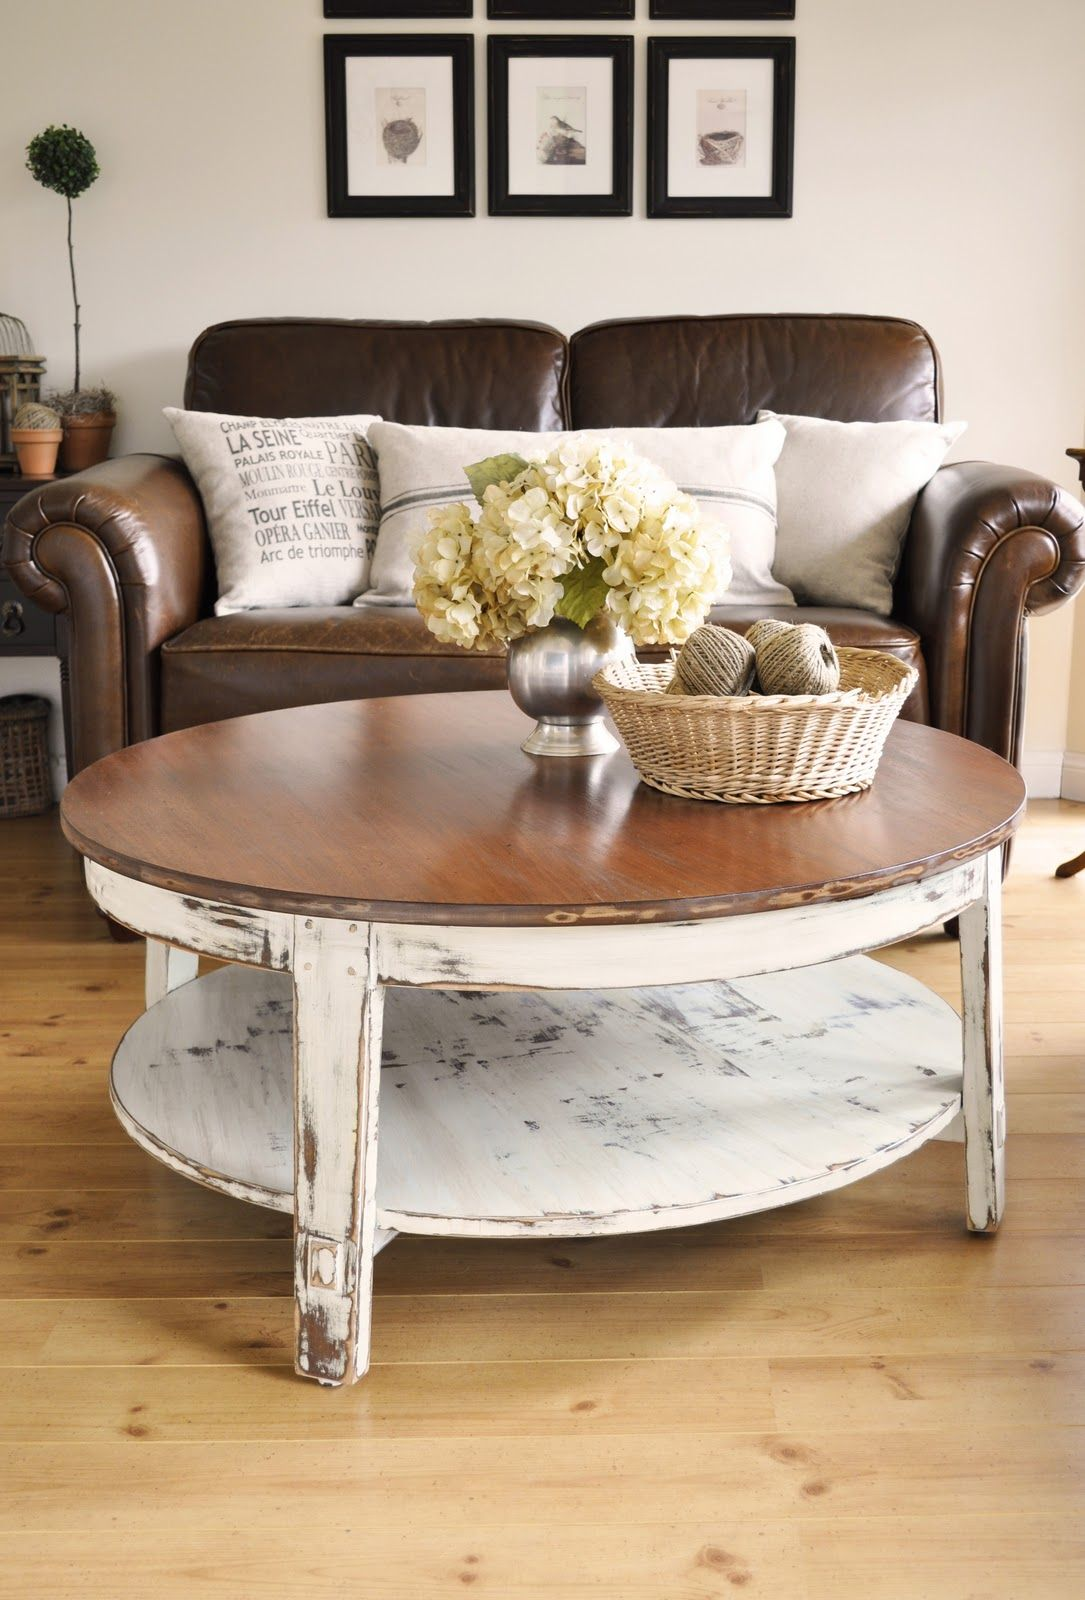 Before After Eight Amazing Coffee Table Makeovers Distressed Coffee Table Coffee Table Coffee Table Makeover [ 1600 x 1085 Pixel ]